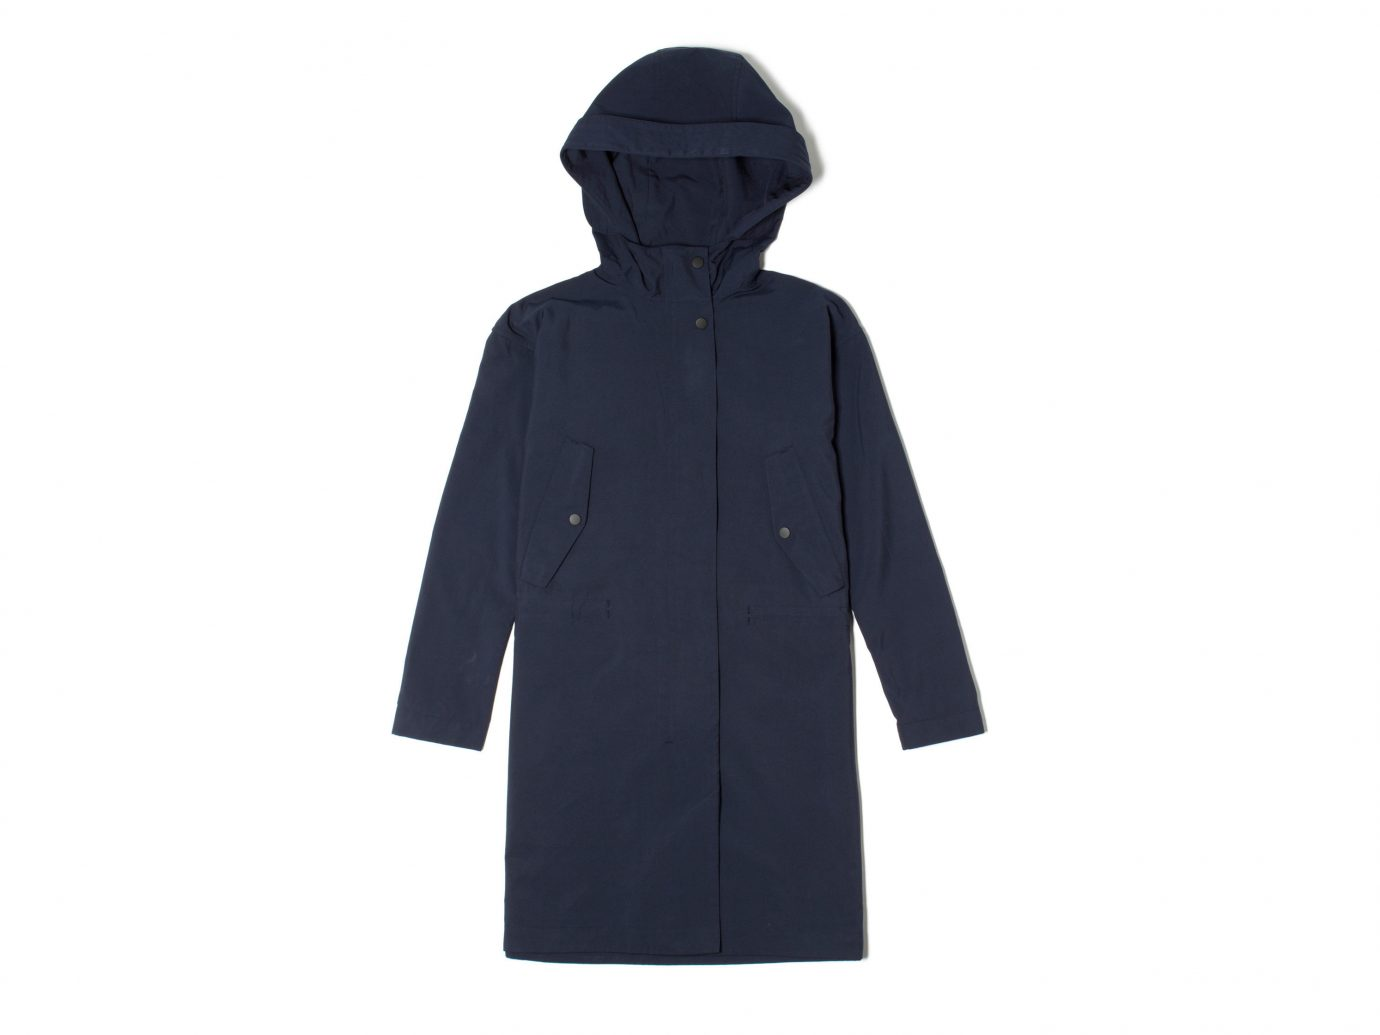 Travel Shop clothing hood coat outerwear product overcoat jacket neck